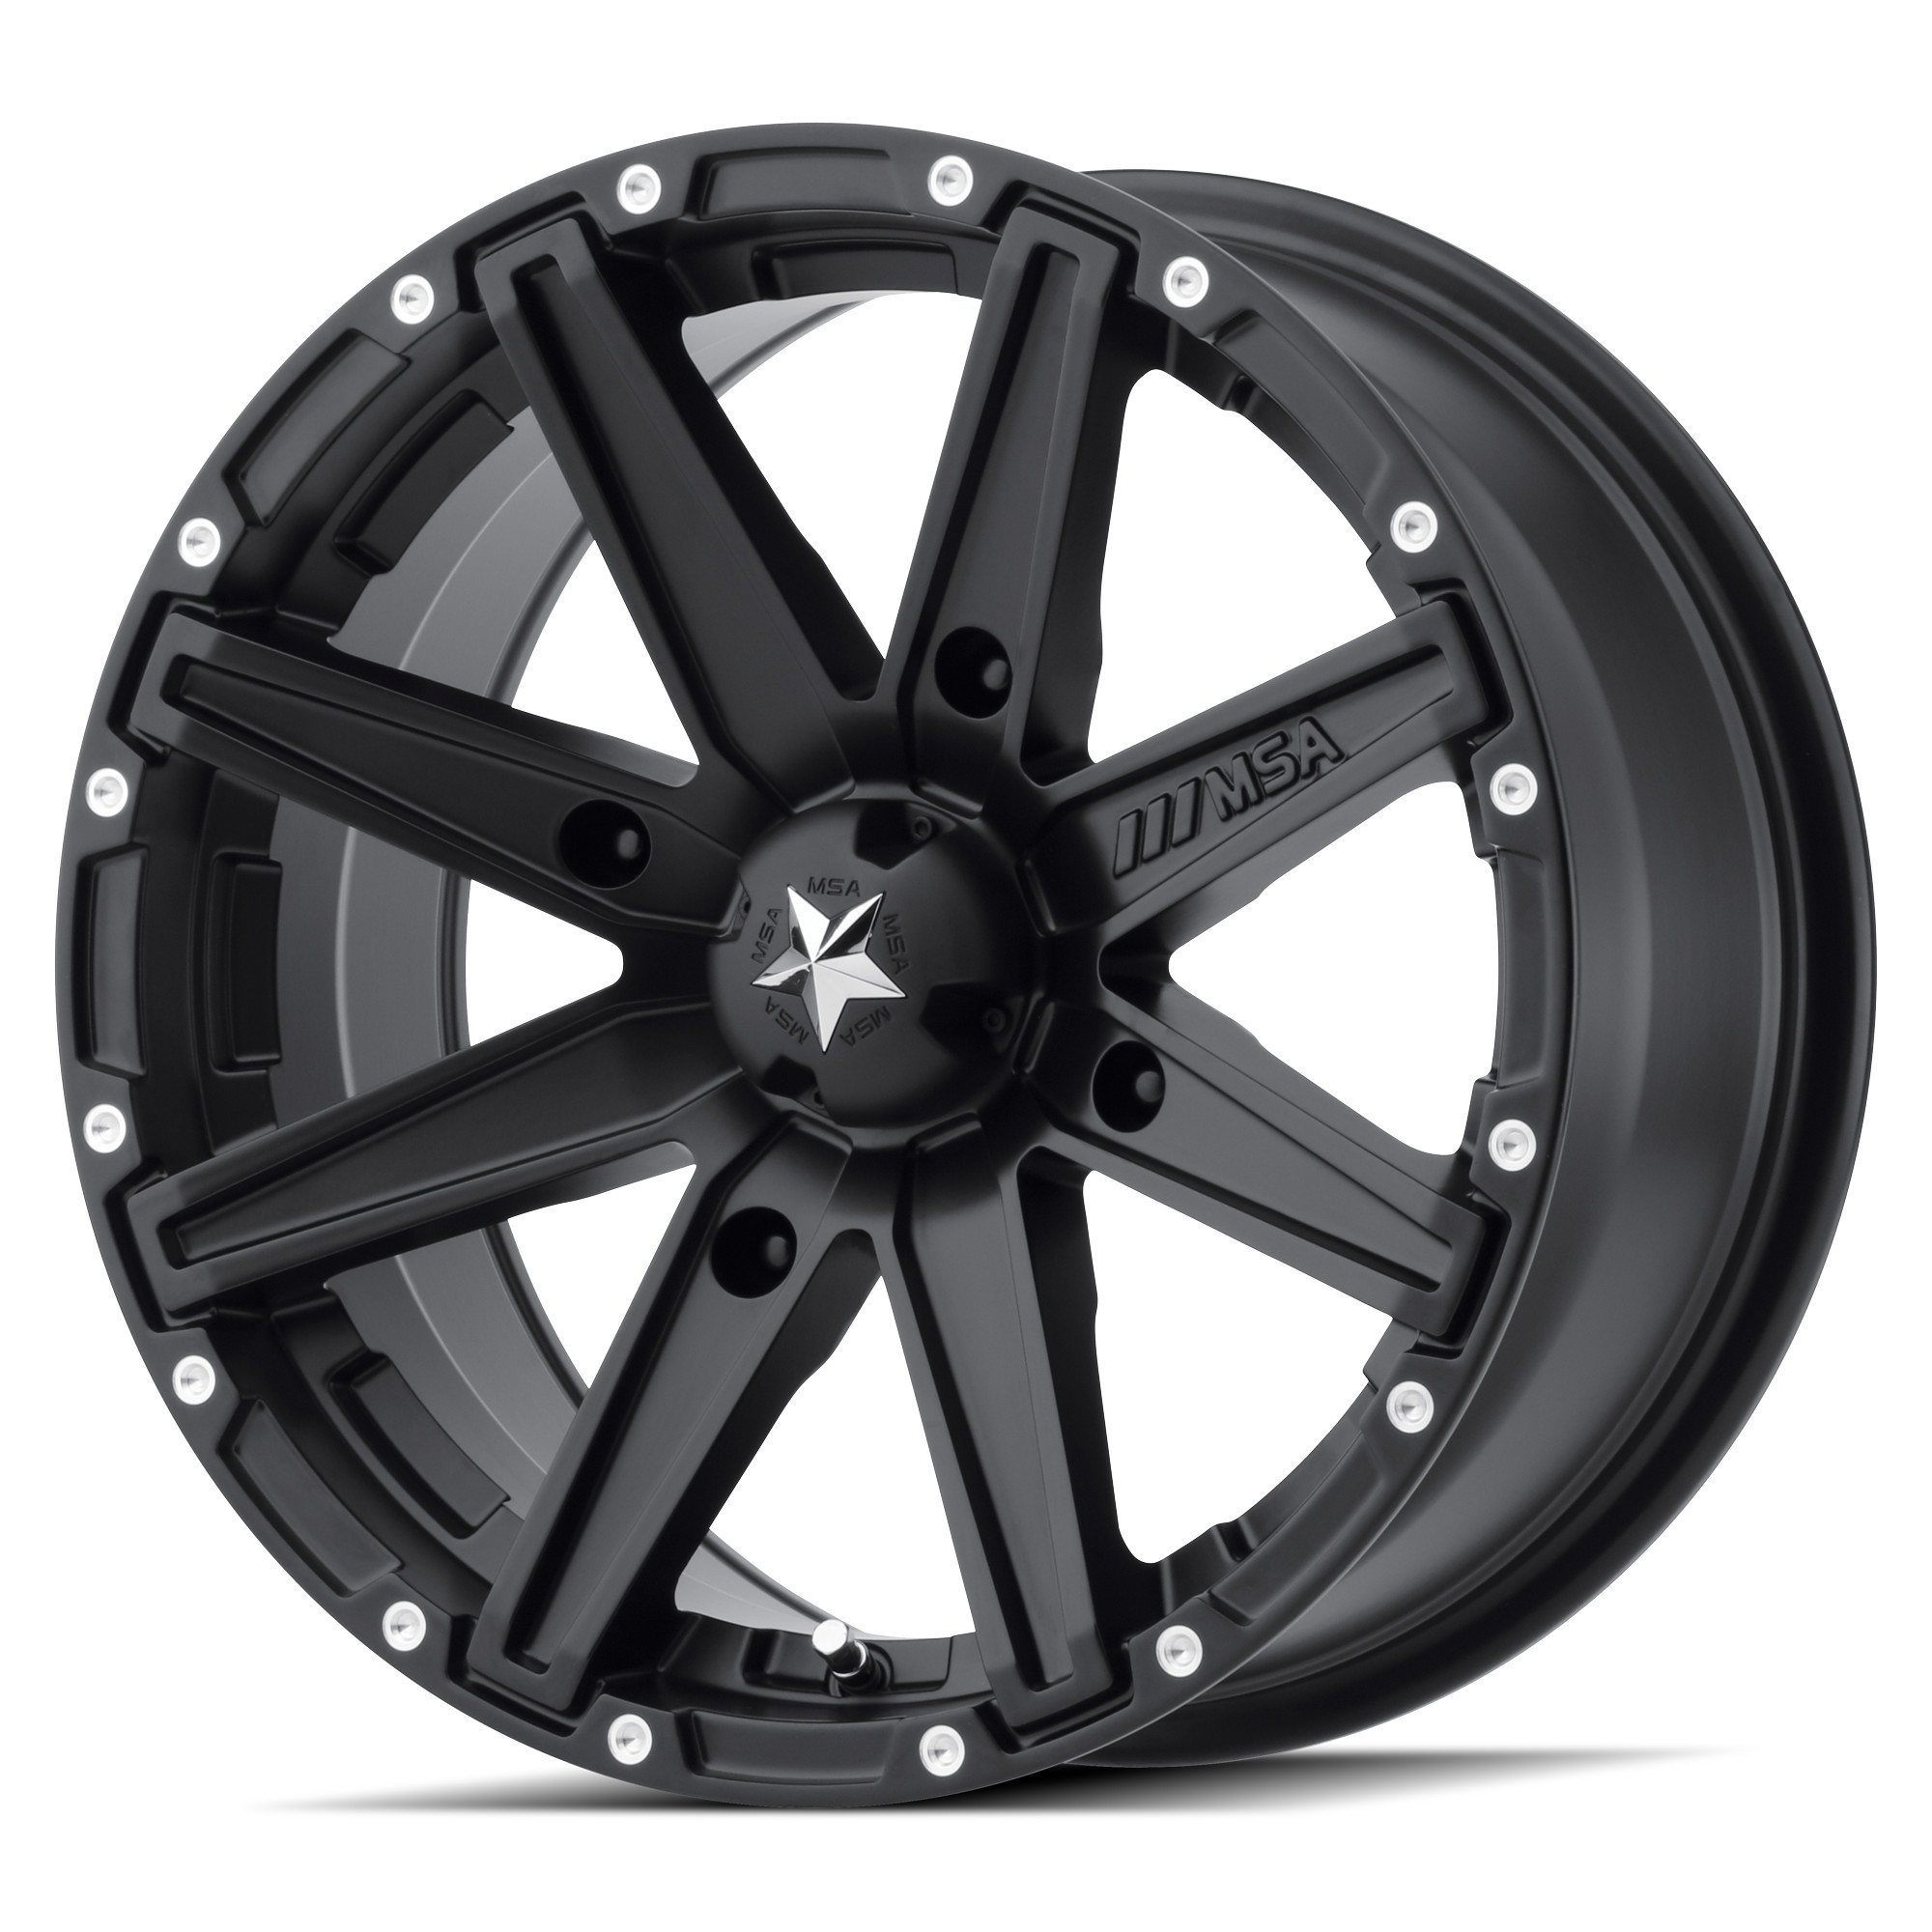 MSA 14x7 4x137 M33 Clutch Satin Black vannesarja Can-Am